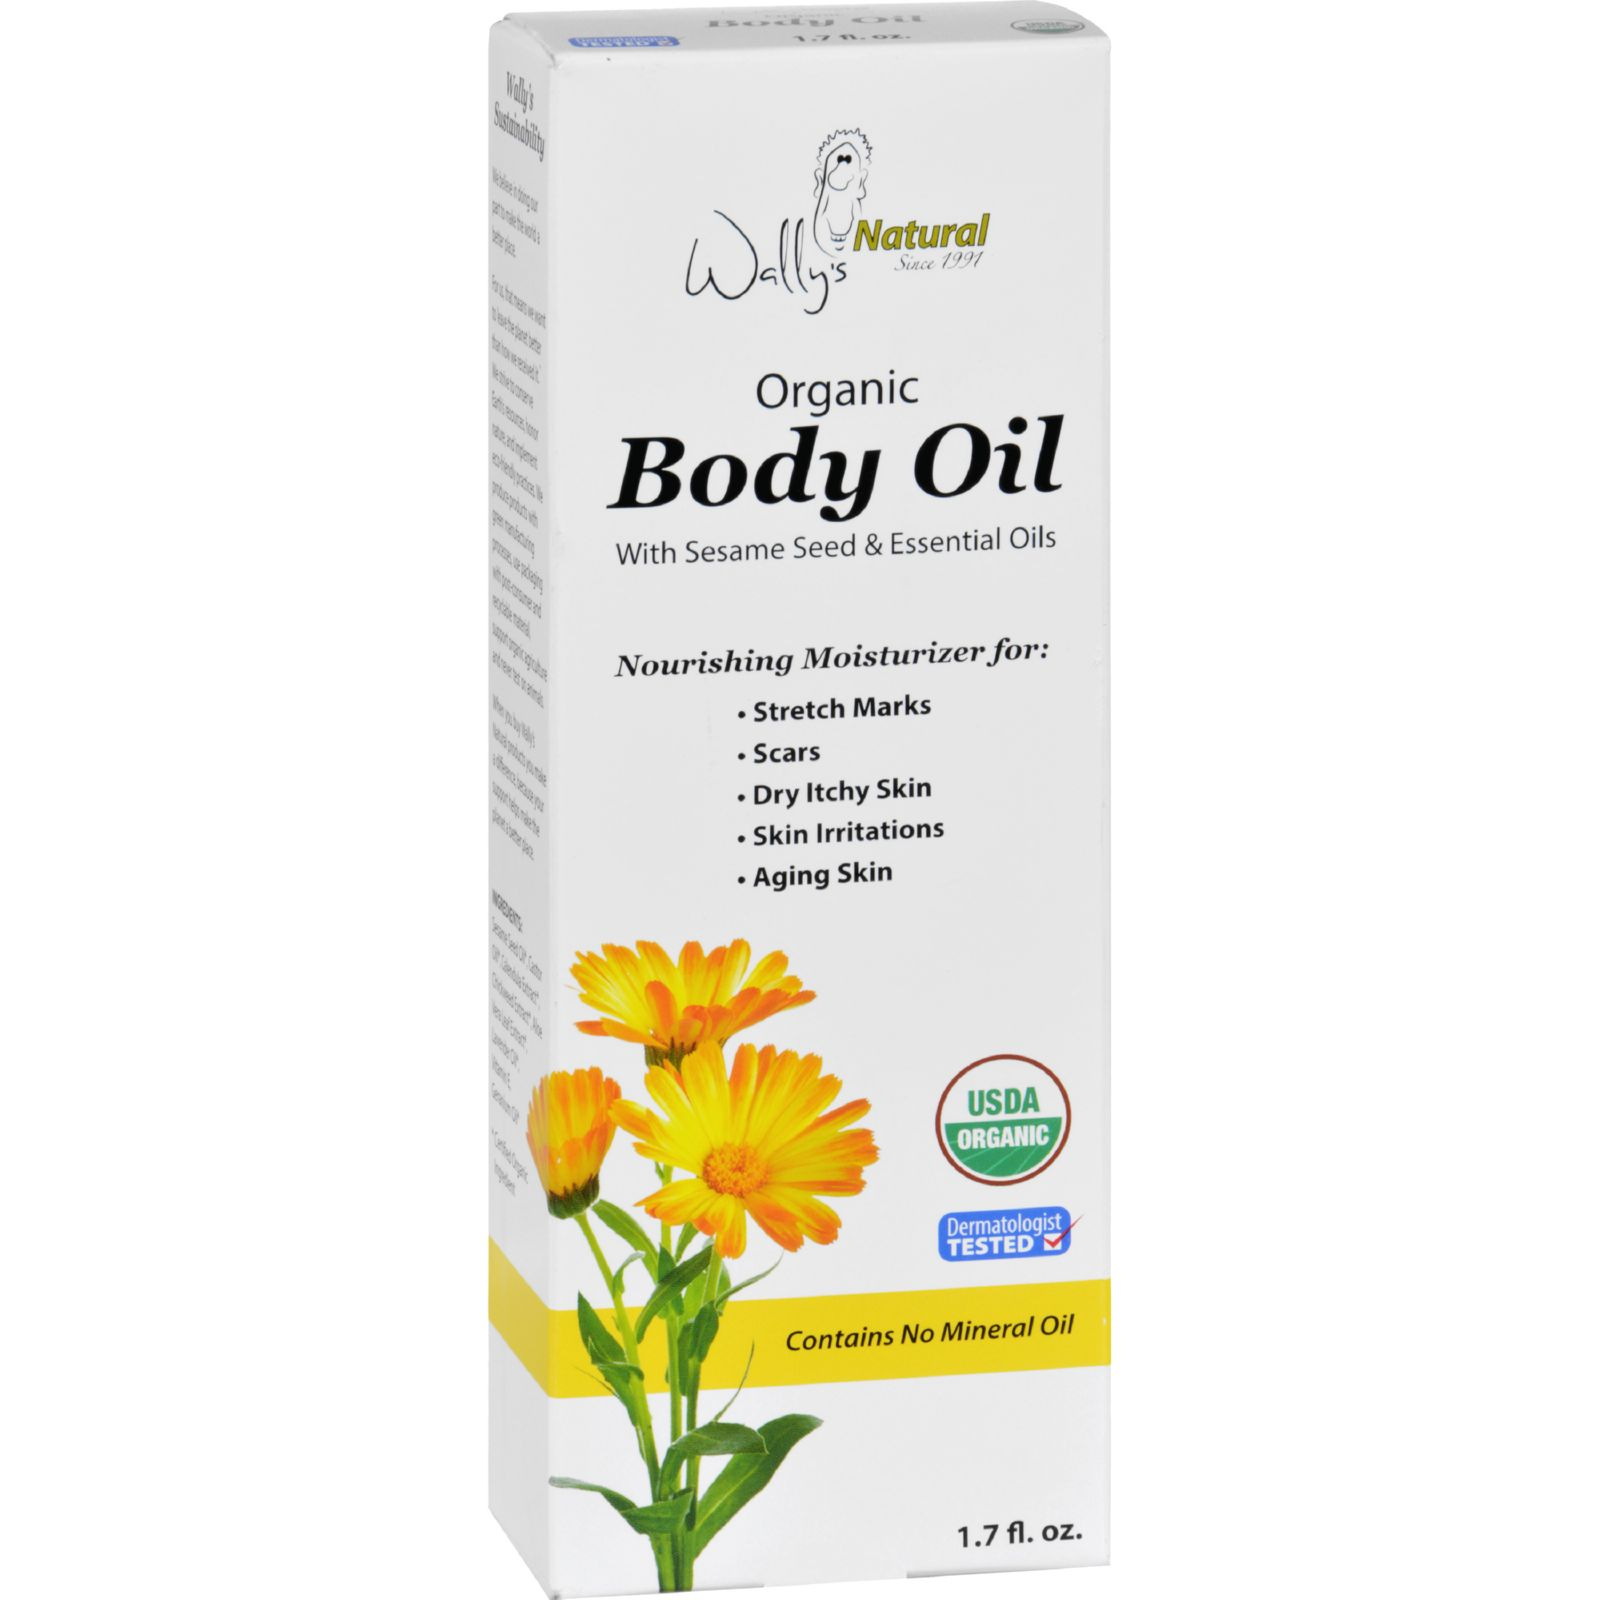 Wallys Natural Products Body Oil - Organic - 1.7 oz